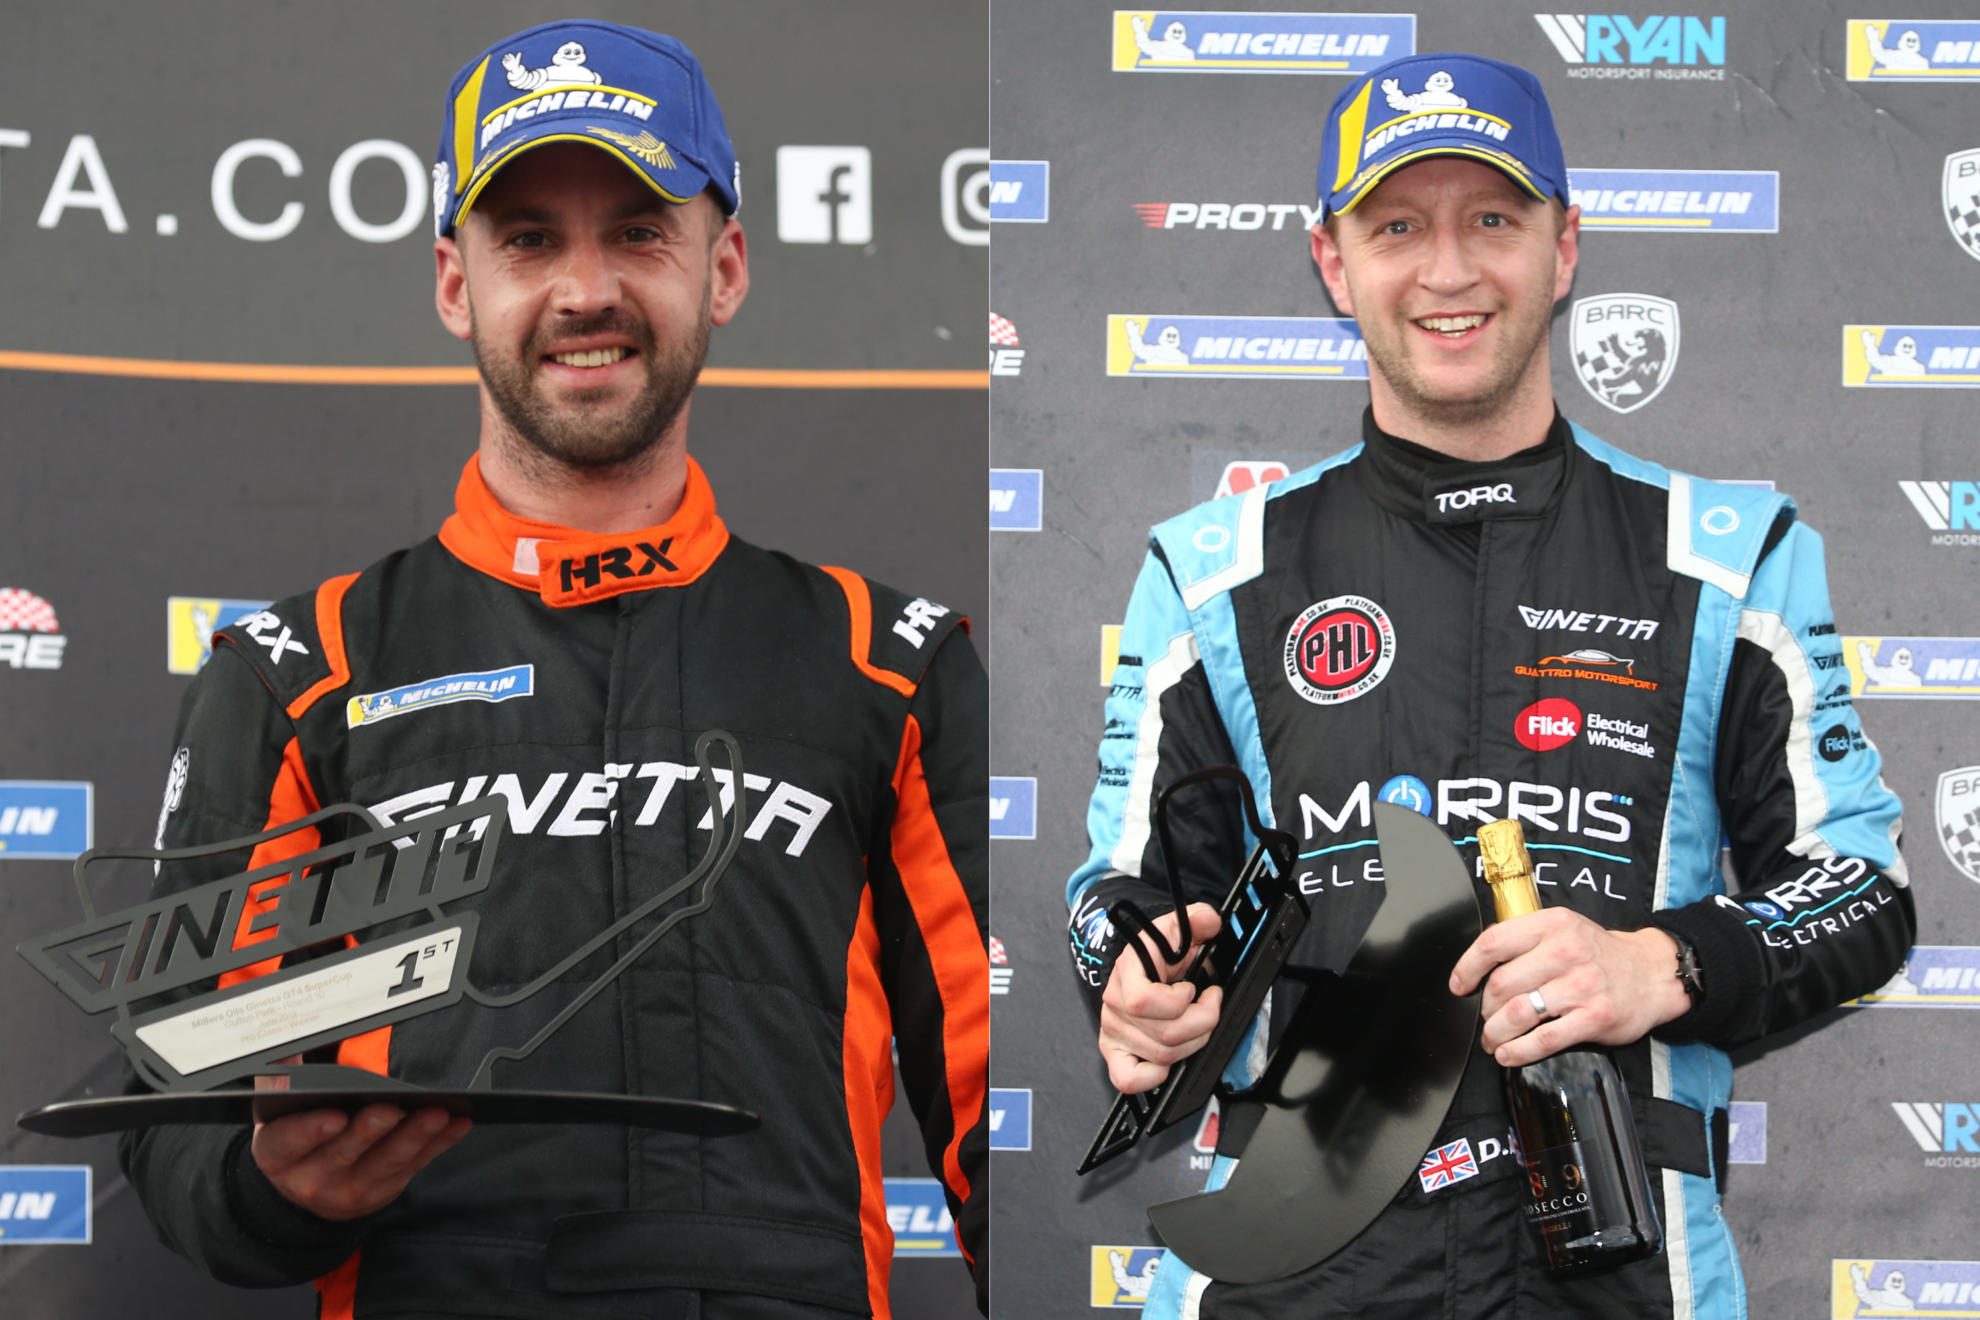 Triple M Enter Hibbert And Morris In Millers Oils Ginetta GT4 SuperCup